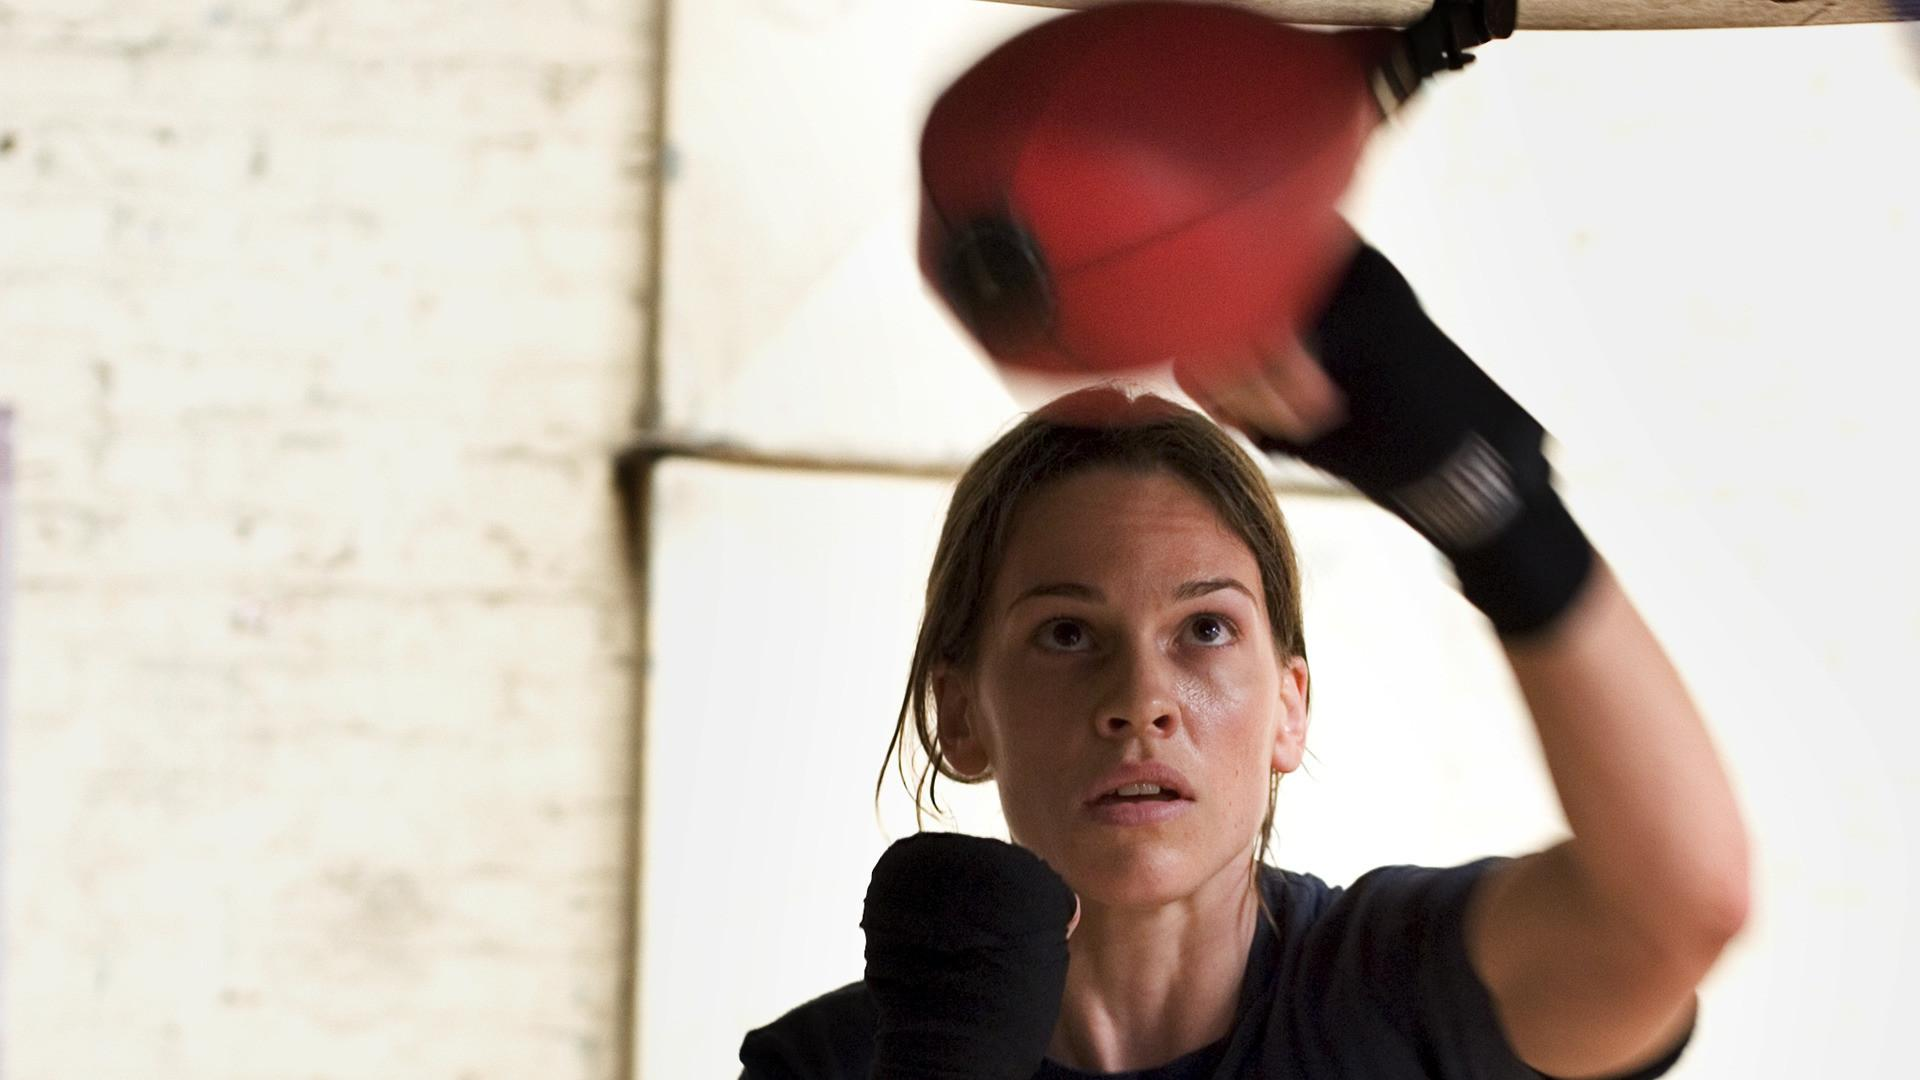 million dollar baby Million dollar baby is a 2004 american sports drama film directed, co-produced, and scored by clint eastwood, and starring eastwood, hilary swank, and morgan freemanthis film is about an underappreciated boxing trainer, the mistakes that haunt him from his past, and his quest for atonement by helping an underdog amateur boxer achieve her dream of becoming a professional.